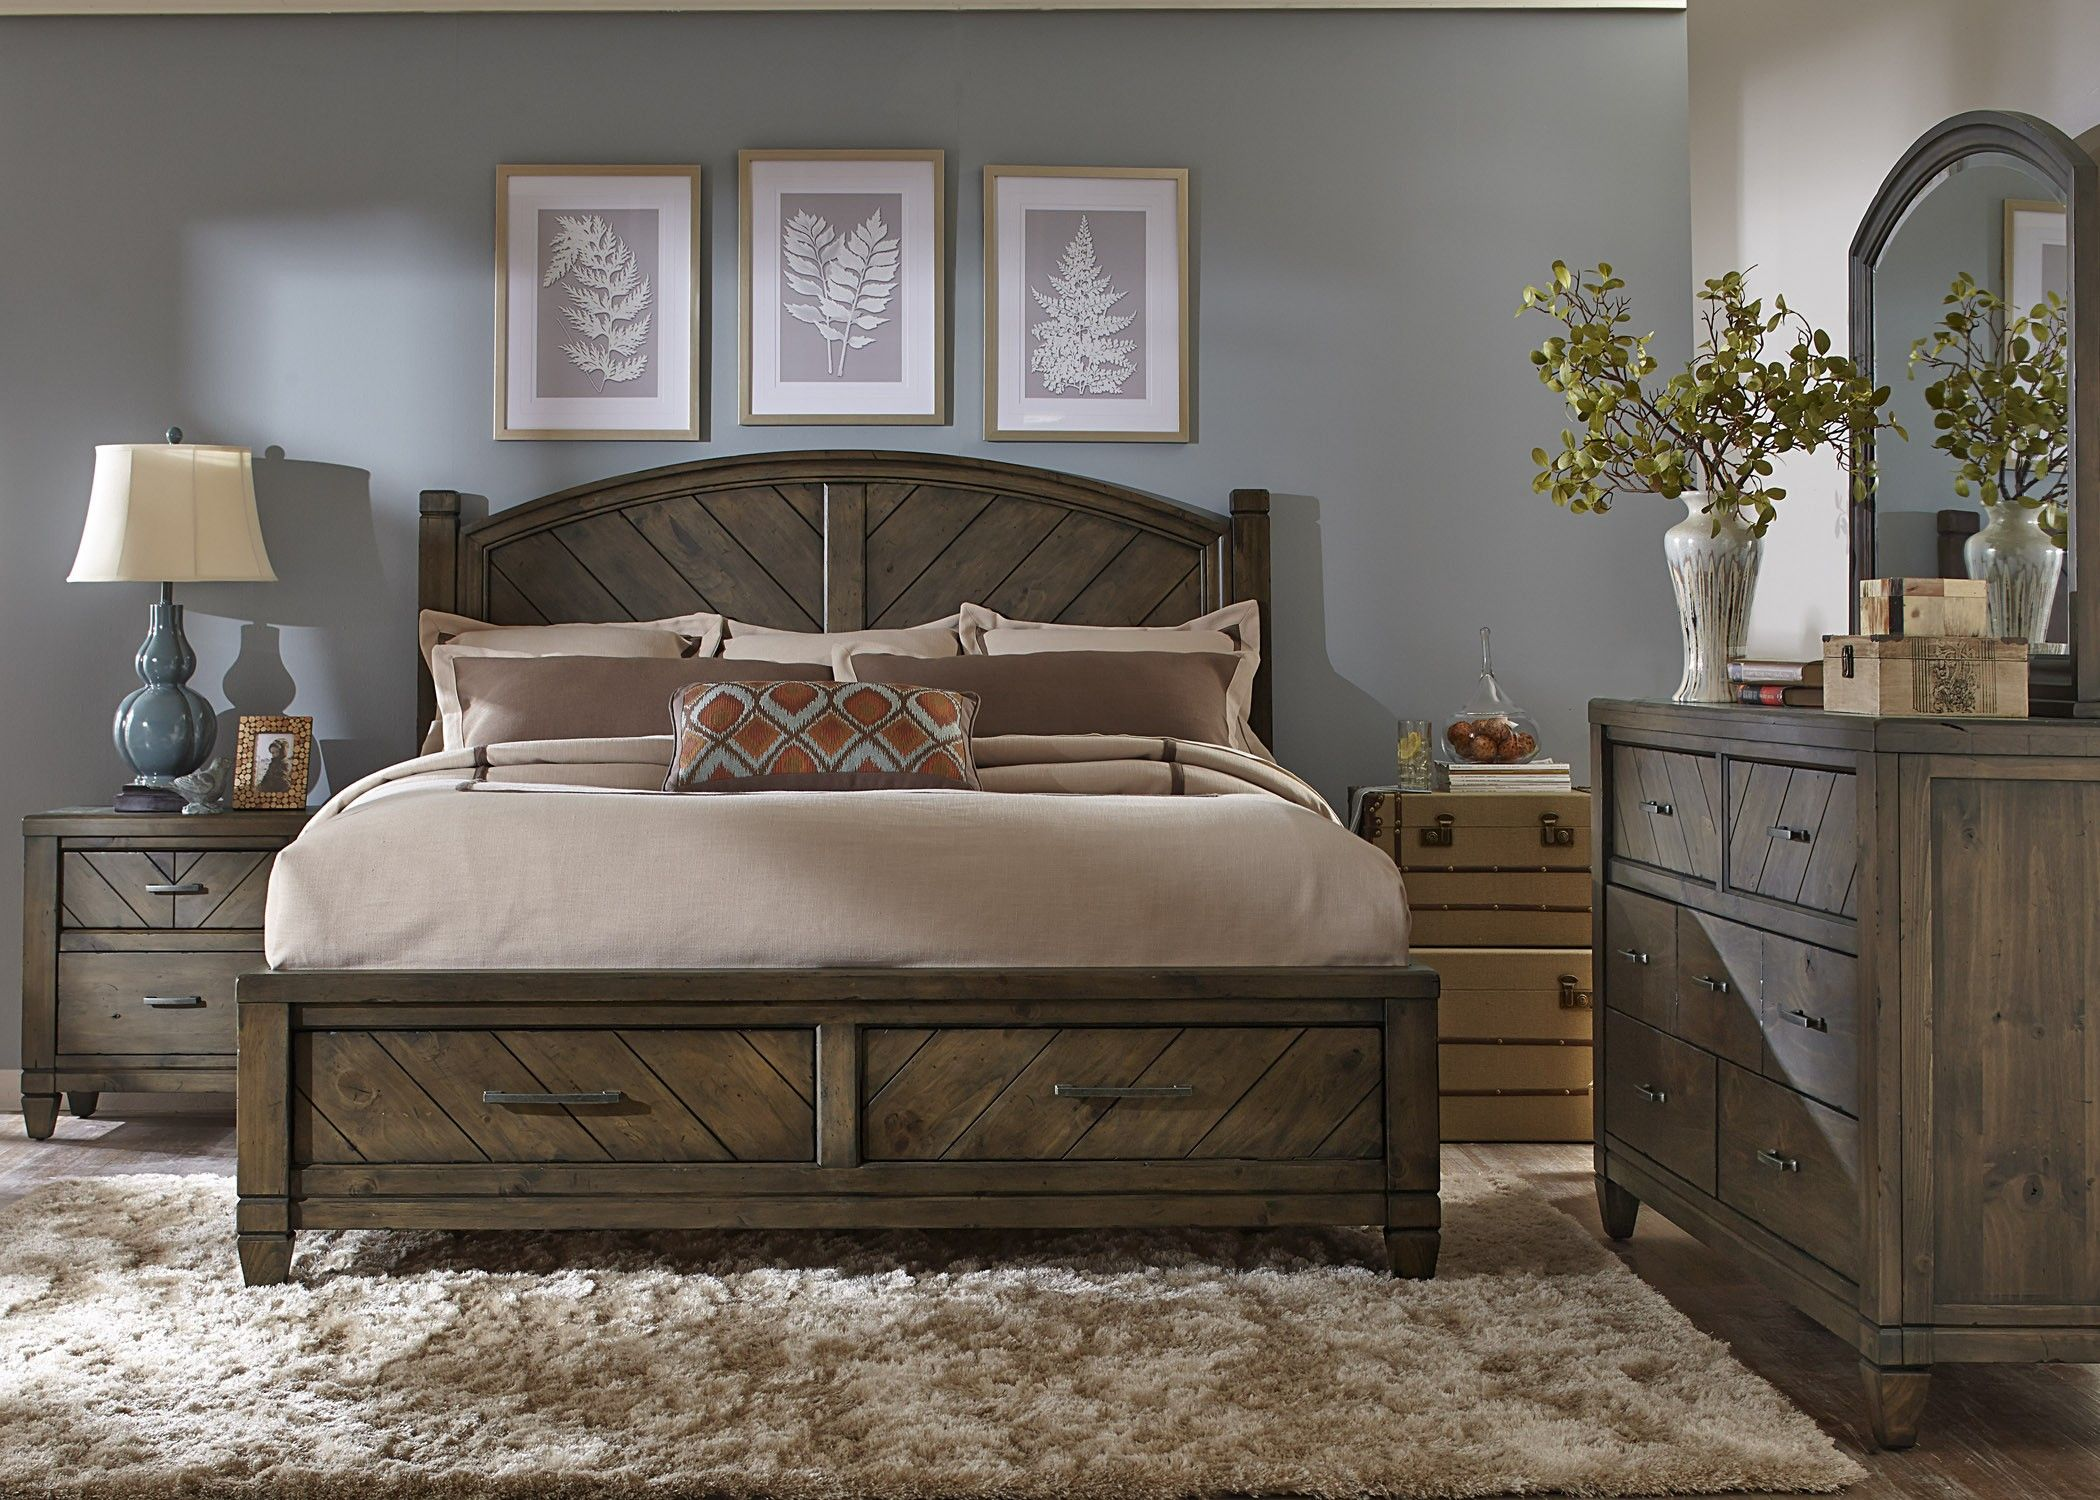 Awesome Modern Country Bedroom Decorating Ideas Modern Country Bedrooms Contemporary Bedroom Furniture Country Bedroom